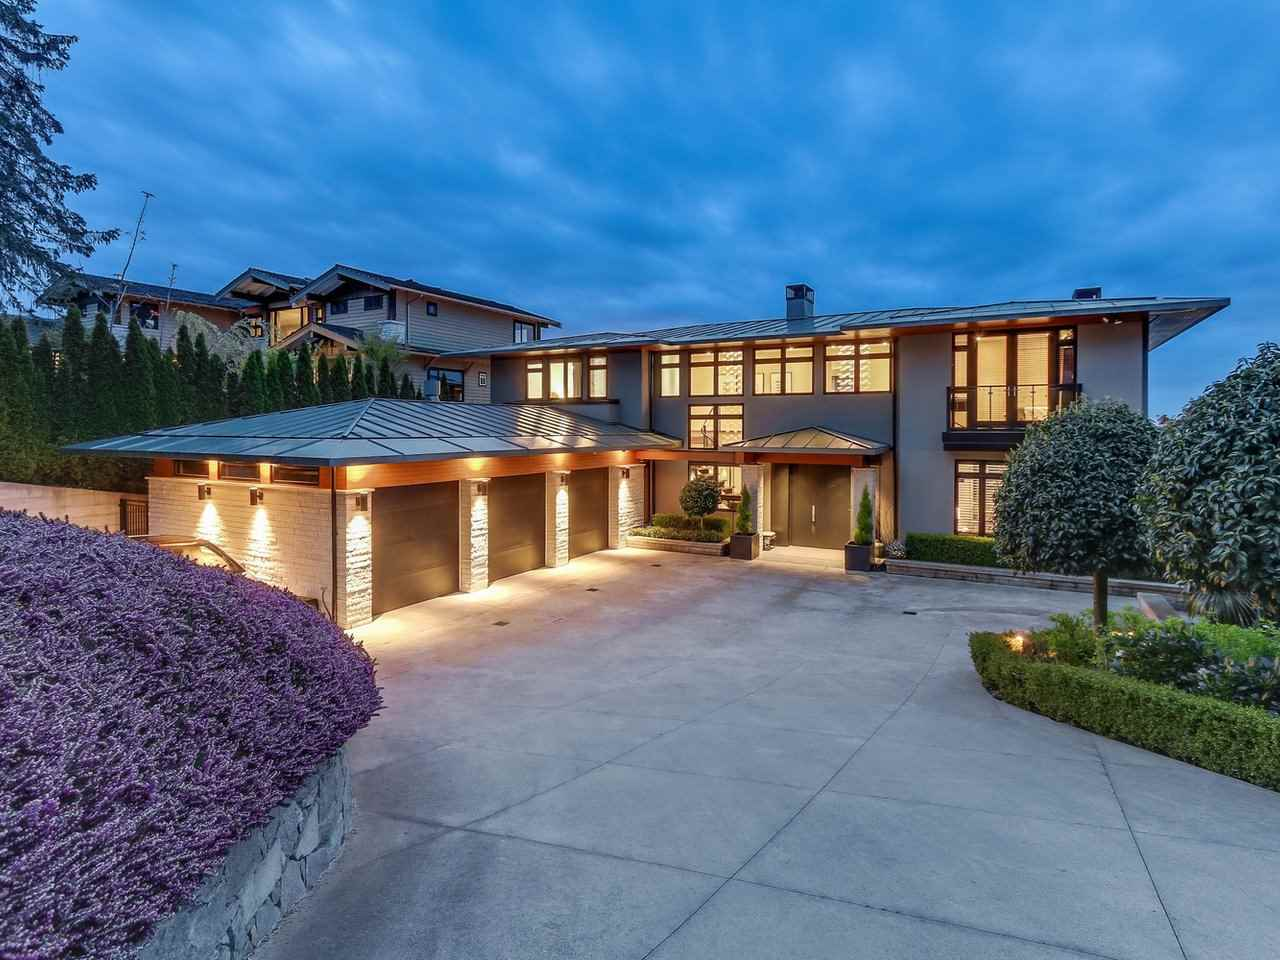 Modern custom built home with magnificent ocean views. Architect-designed and interior by Mitchell Freedland. Main floor offers an open plan with a chef-inspired kitchen, family & dining room with adjoining heated patio to take in the views. The finest construction quality throughout with attention to details & craftsmanship, geothermal heating/AC & metal roof, commercial grade steel foundation, integrated sound system. All Five luxurious bedrooms with en-suites. Amazing outdoor heated dining area with fireplace. Walking distance to Rockridge Secondary/Caufield Village. Short drive to Mulrgave & Collingwood and Park Royal Shopping.